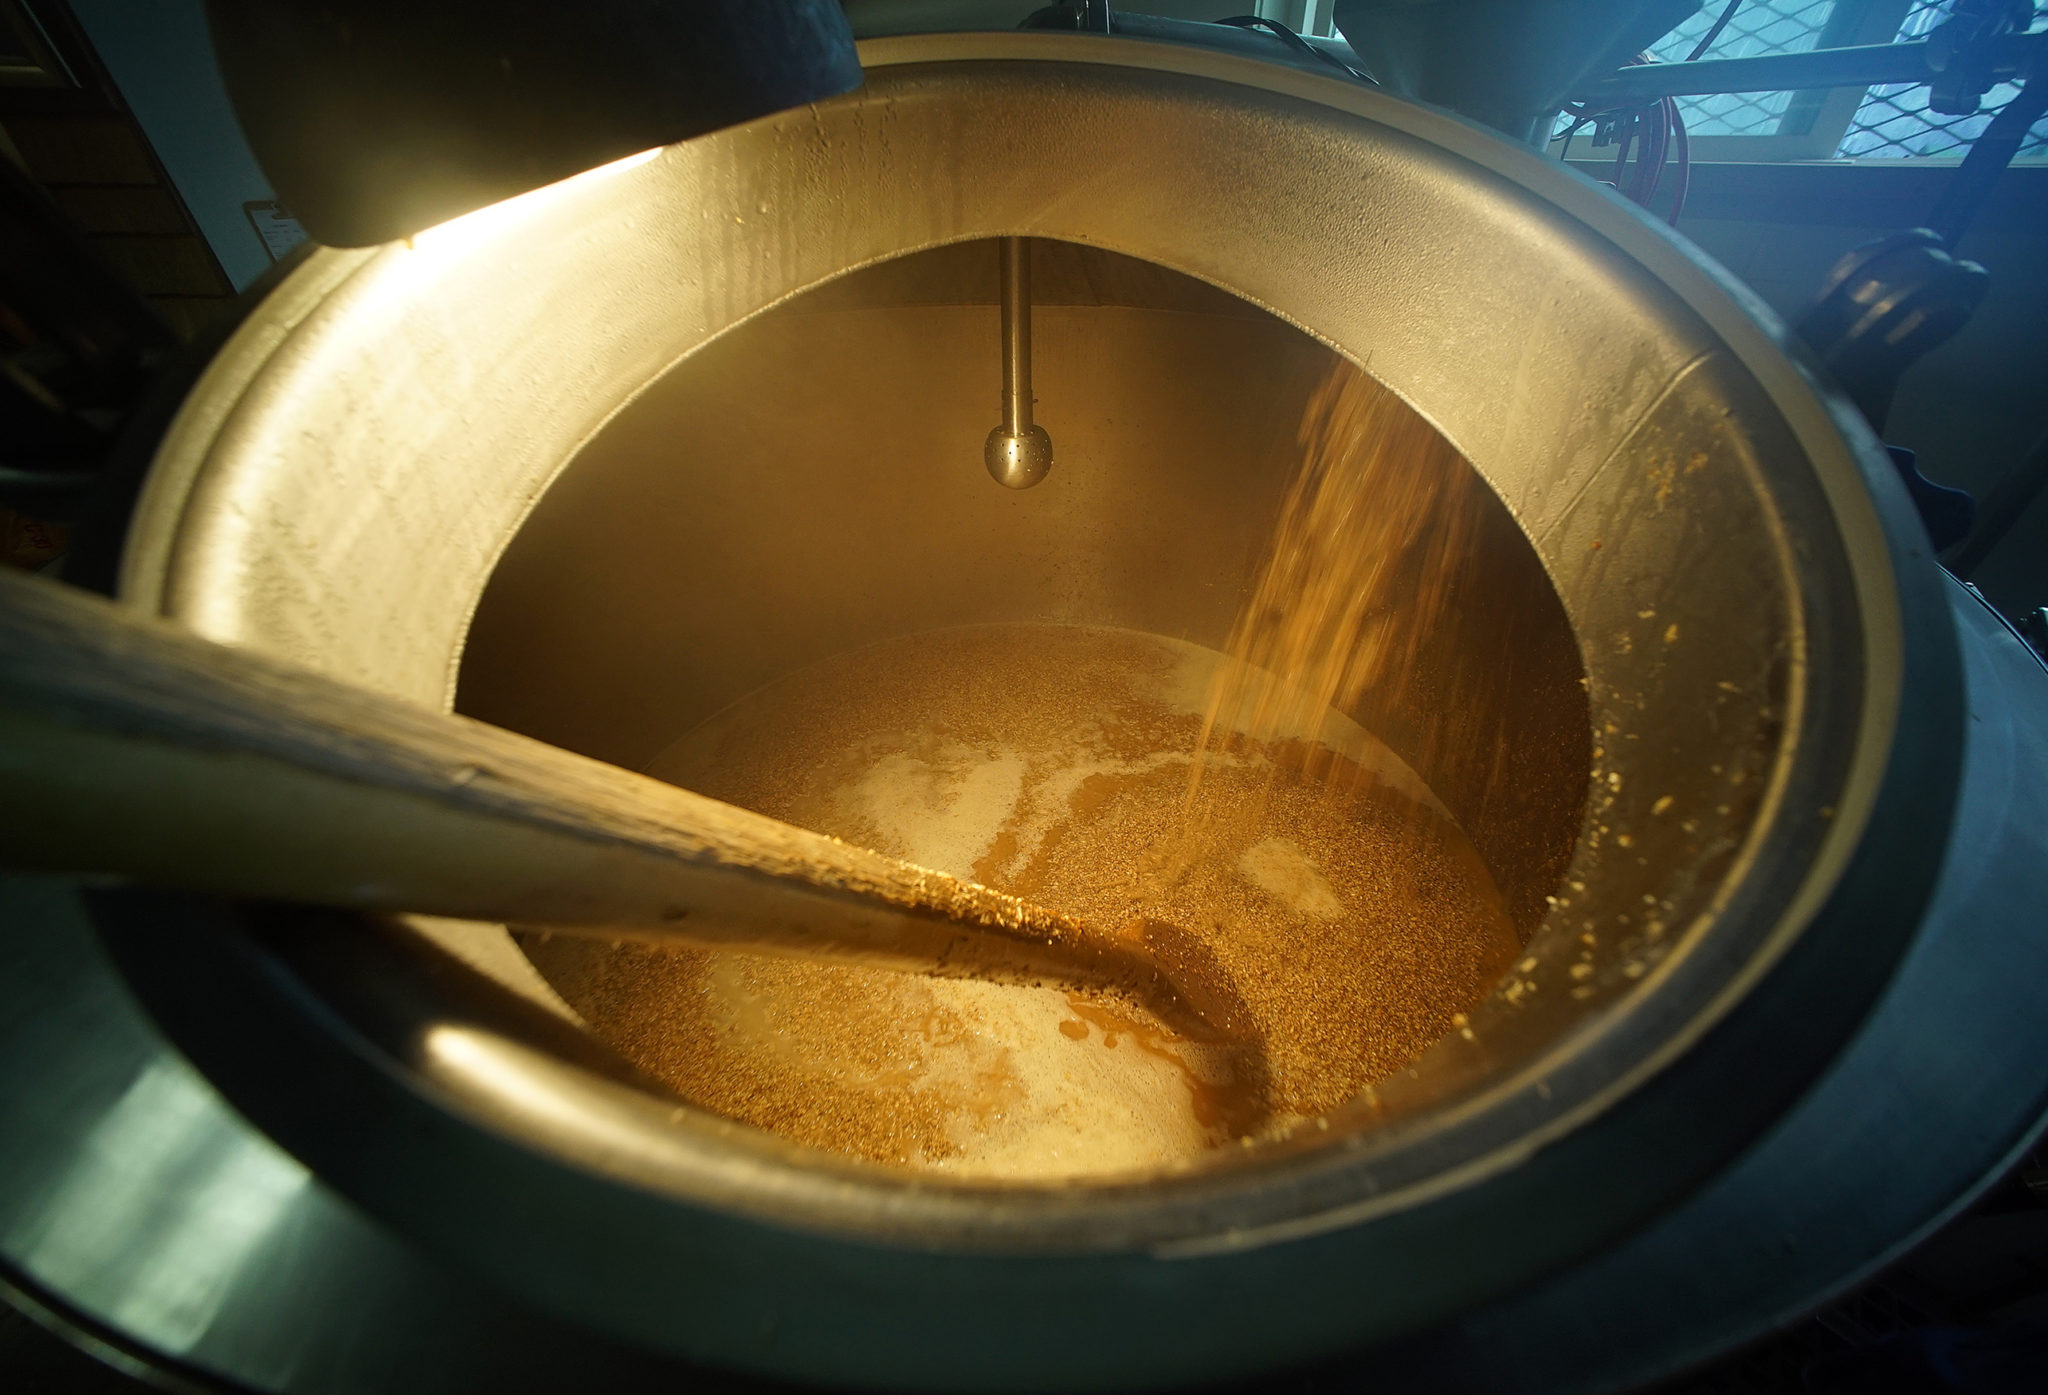 <p>The view from atop the mash tun vessel.</p>